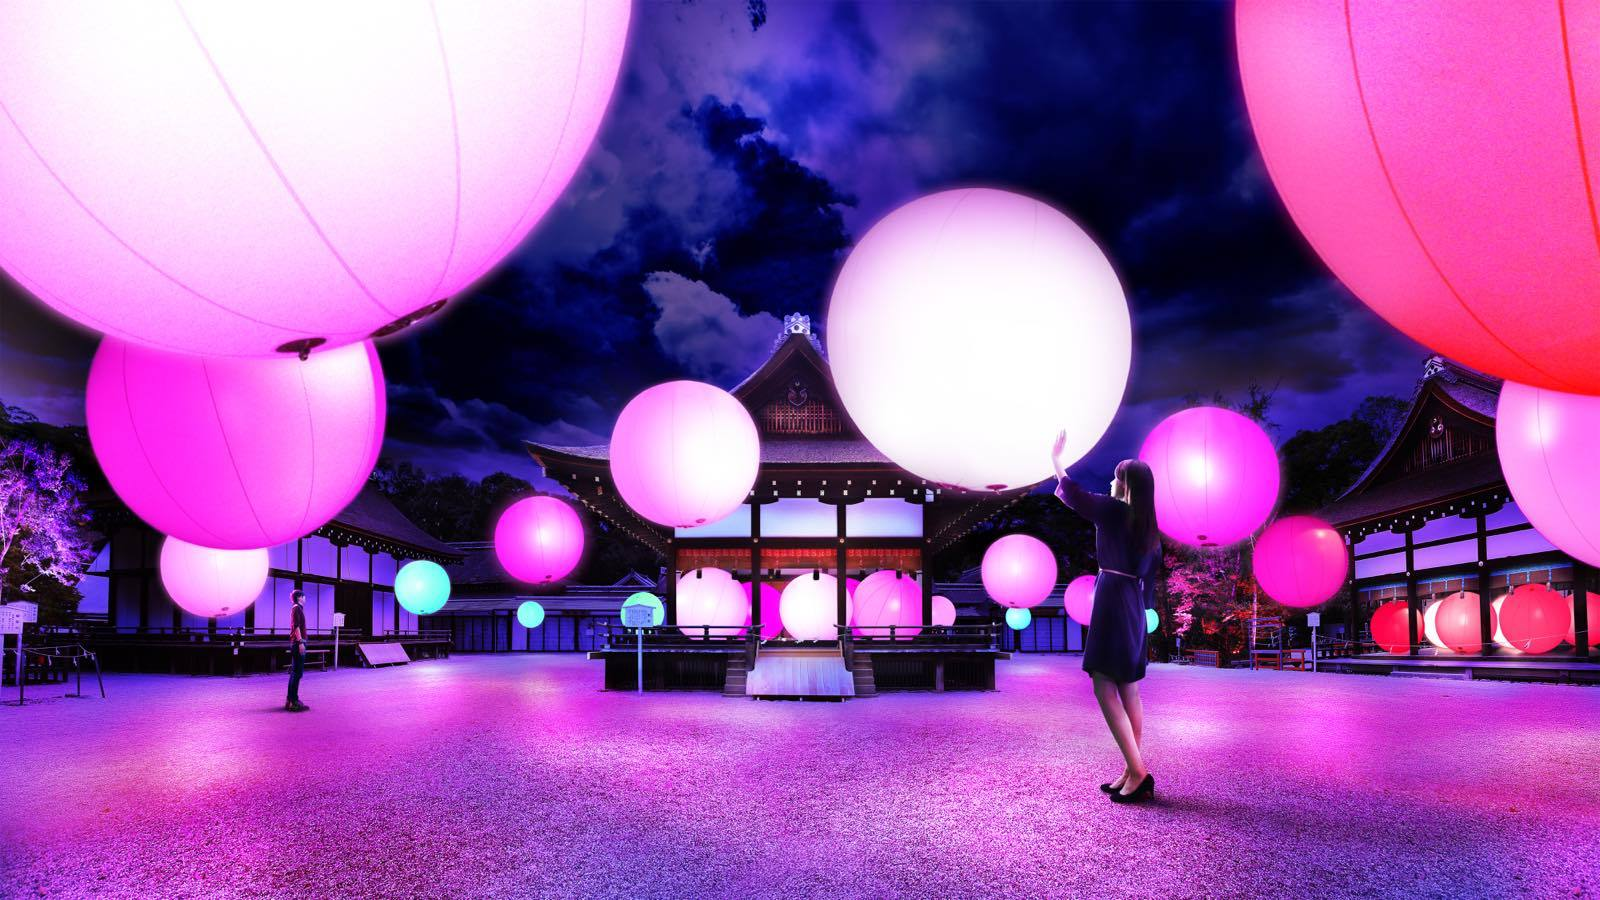 呼応する球体 - 下鴨神社 糺の森/ Resonating Spheres – Forest of Tadasu at Shimogamo Shrine teamLab, 2016, Interactive Installation, Endless, Sound: Hideaki Takahashi